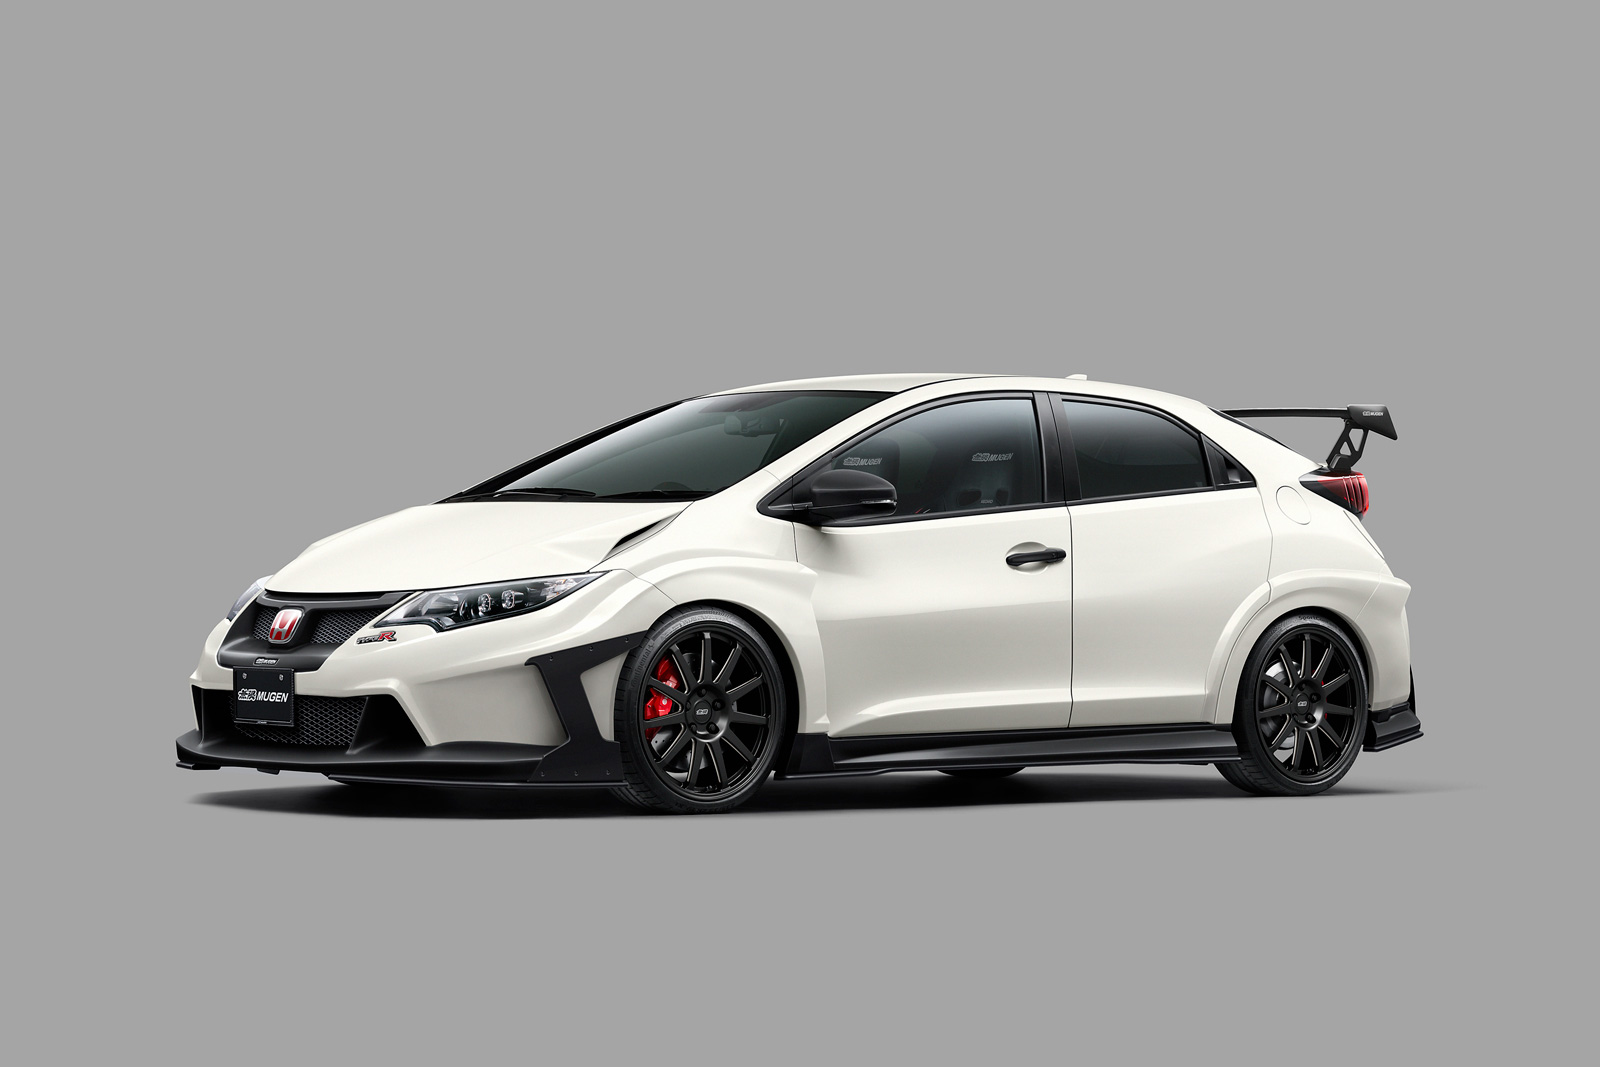 Mugen Honda Civic Type R To Be Showcased Next Month